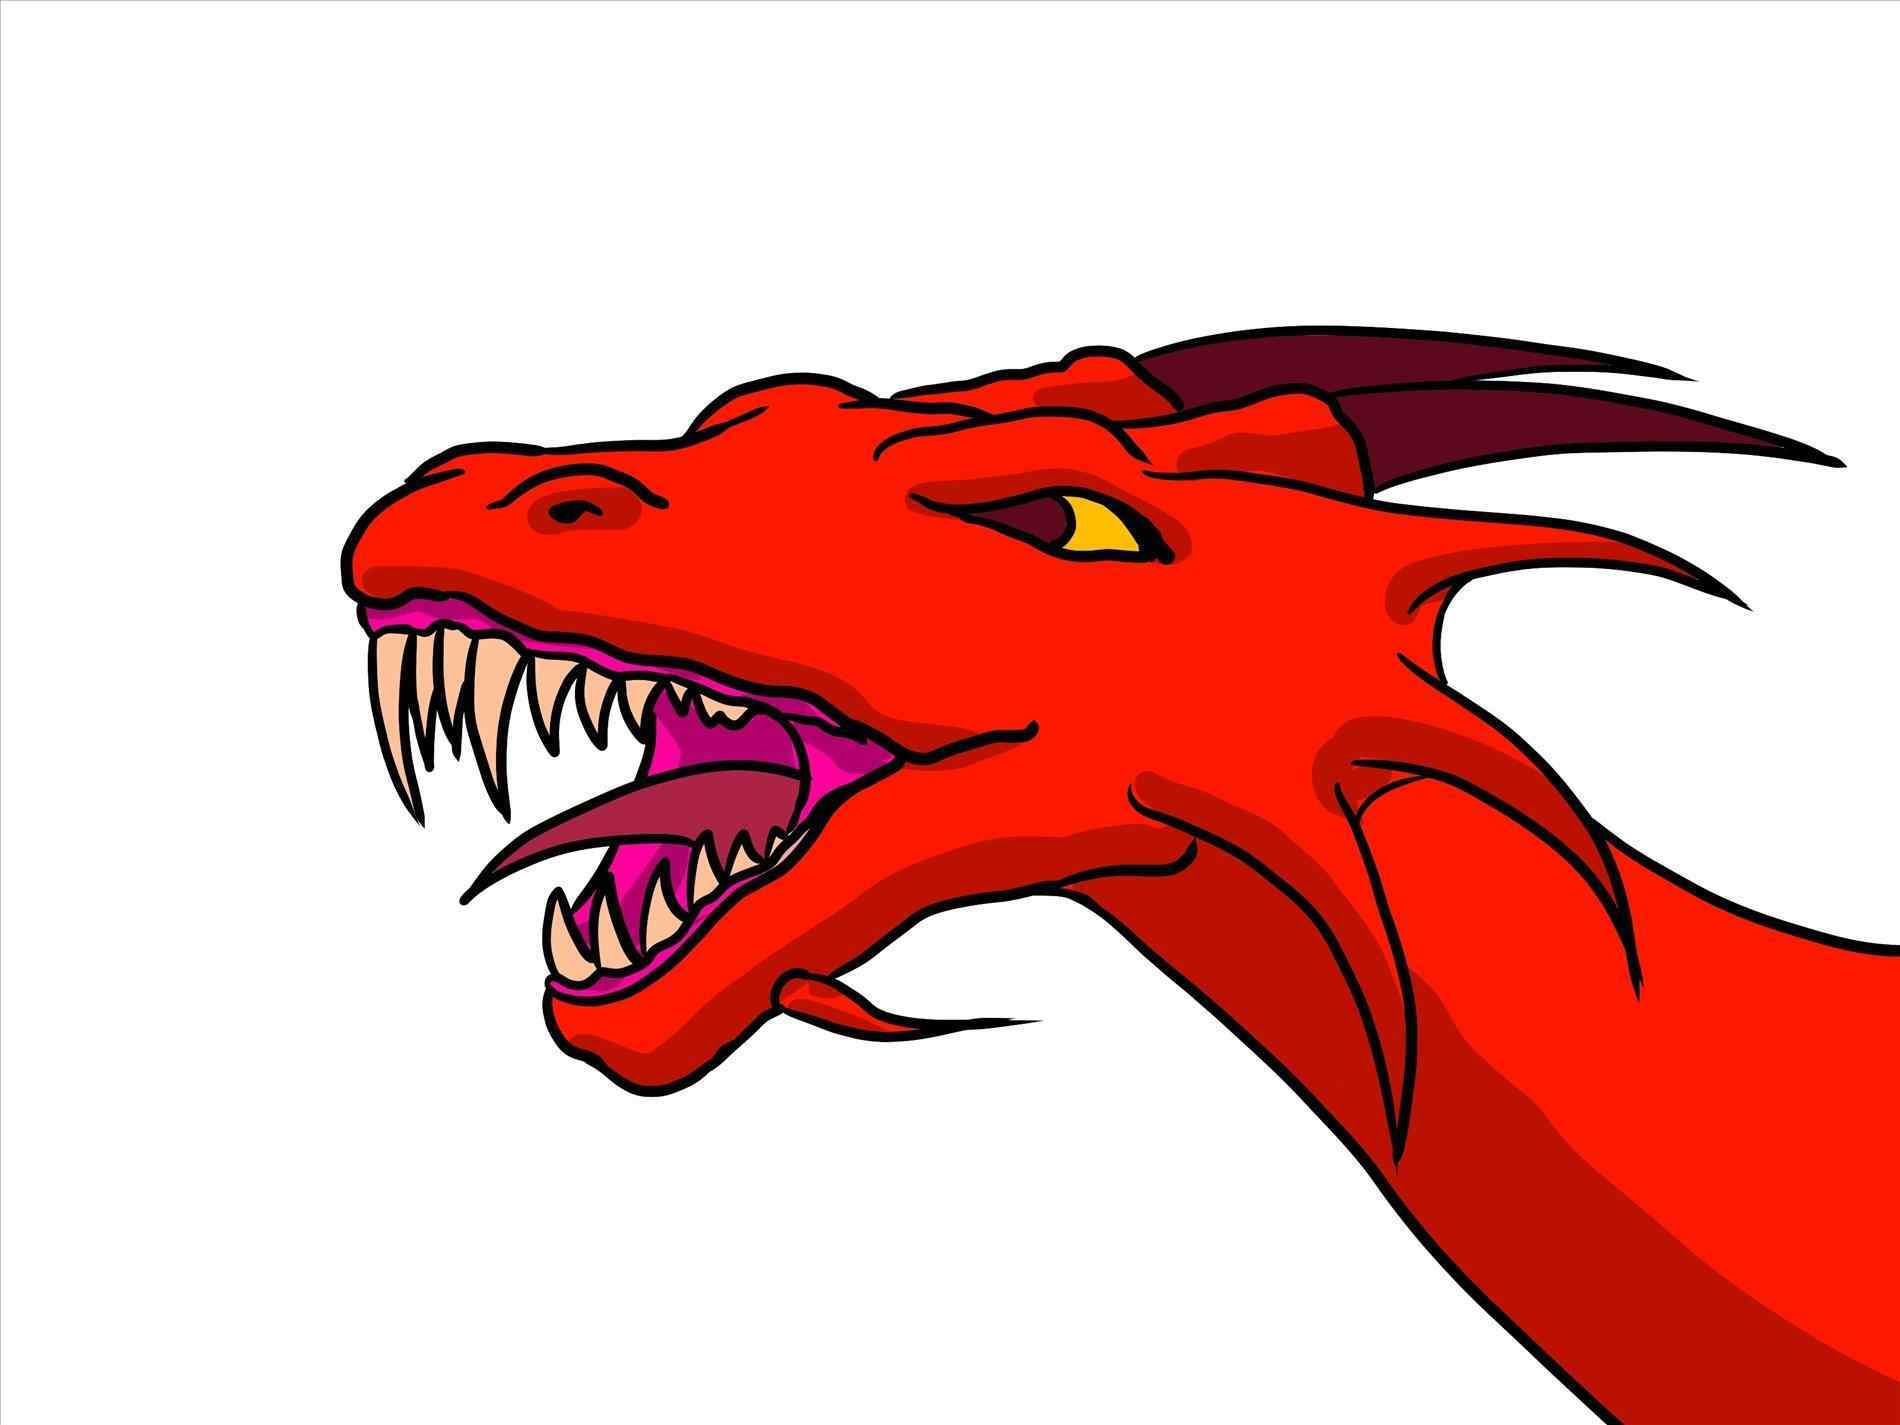 1900x1425 Drawings For Beginners To Draw A Cool Dragon Dragons Easy Step